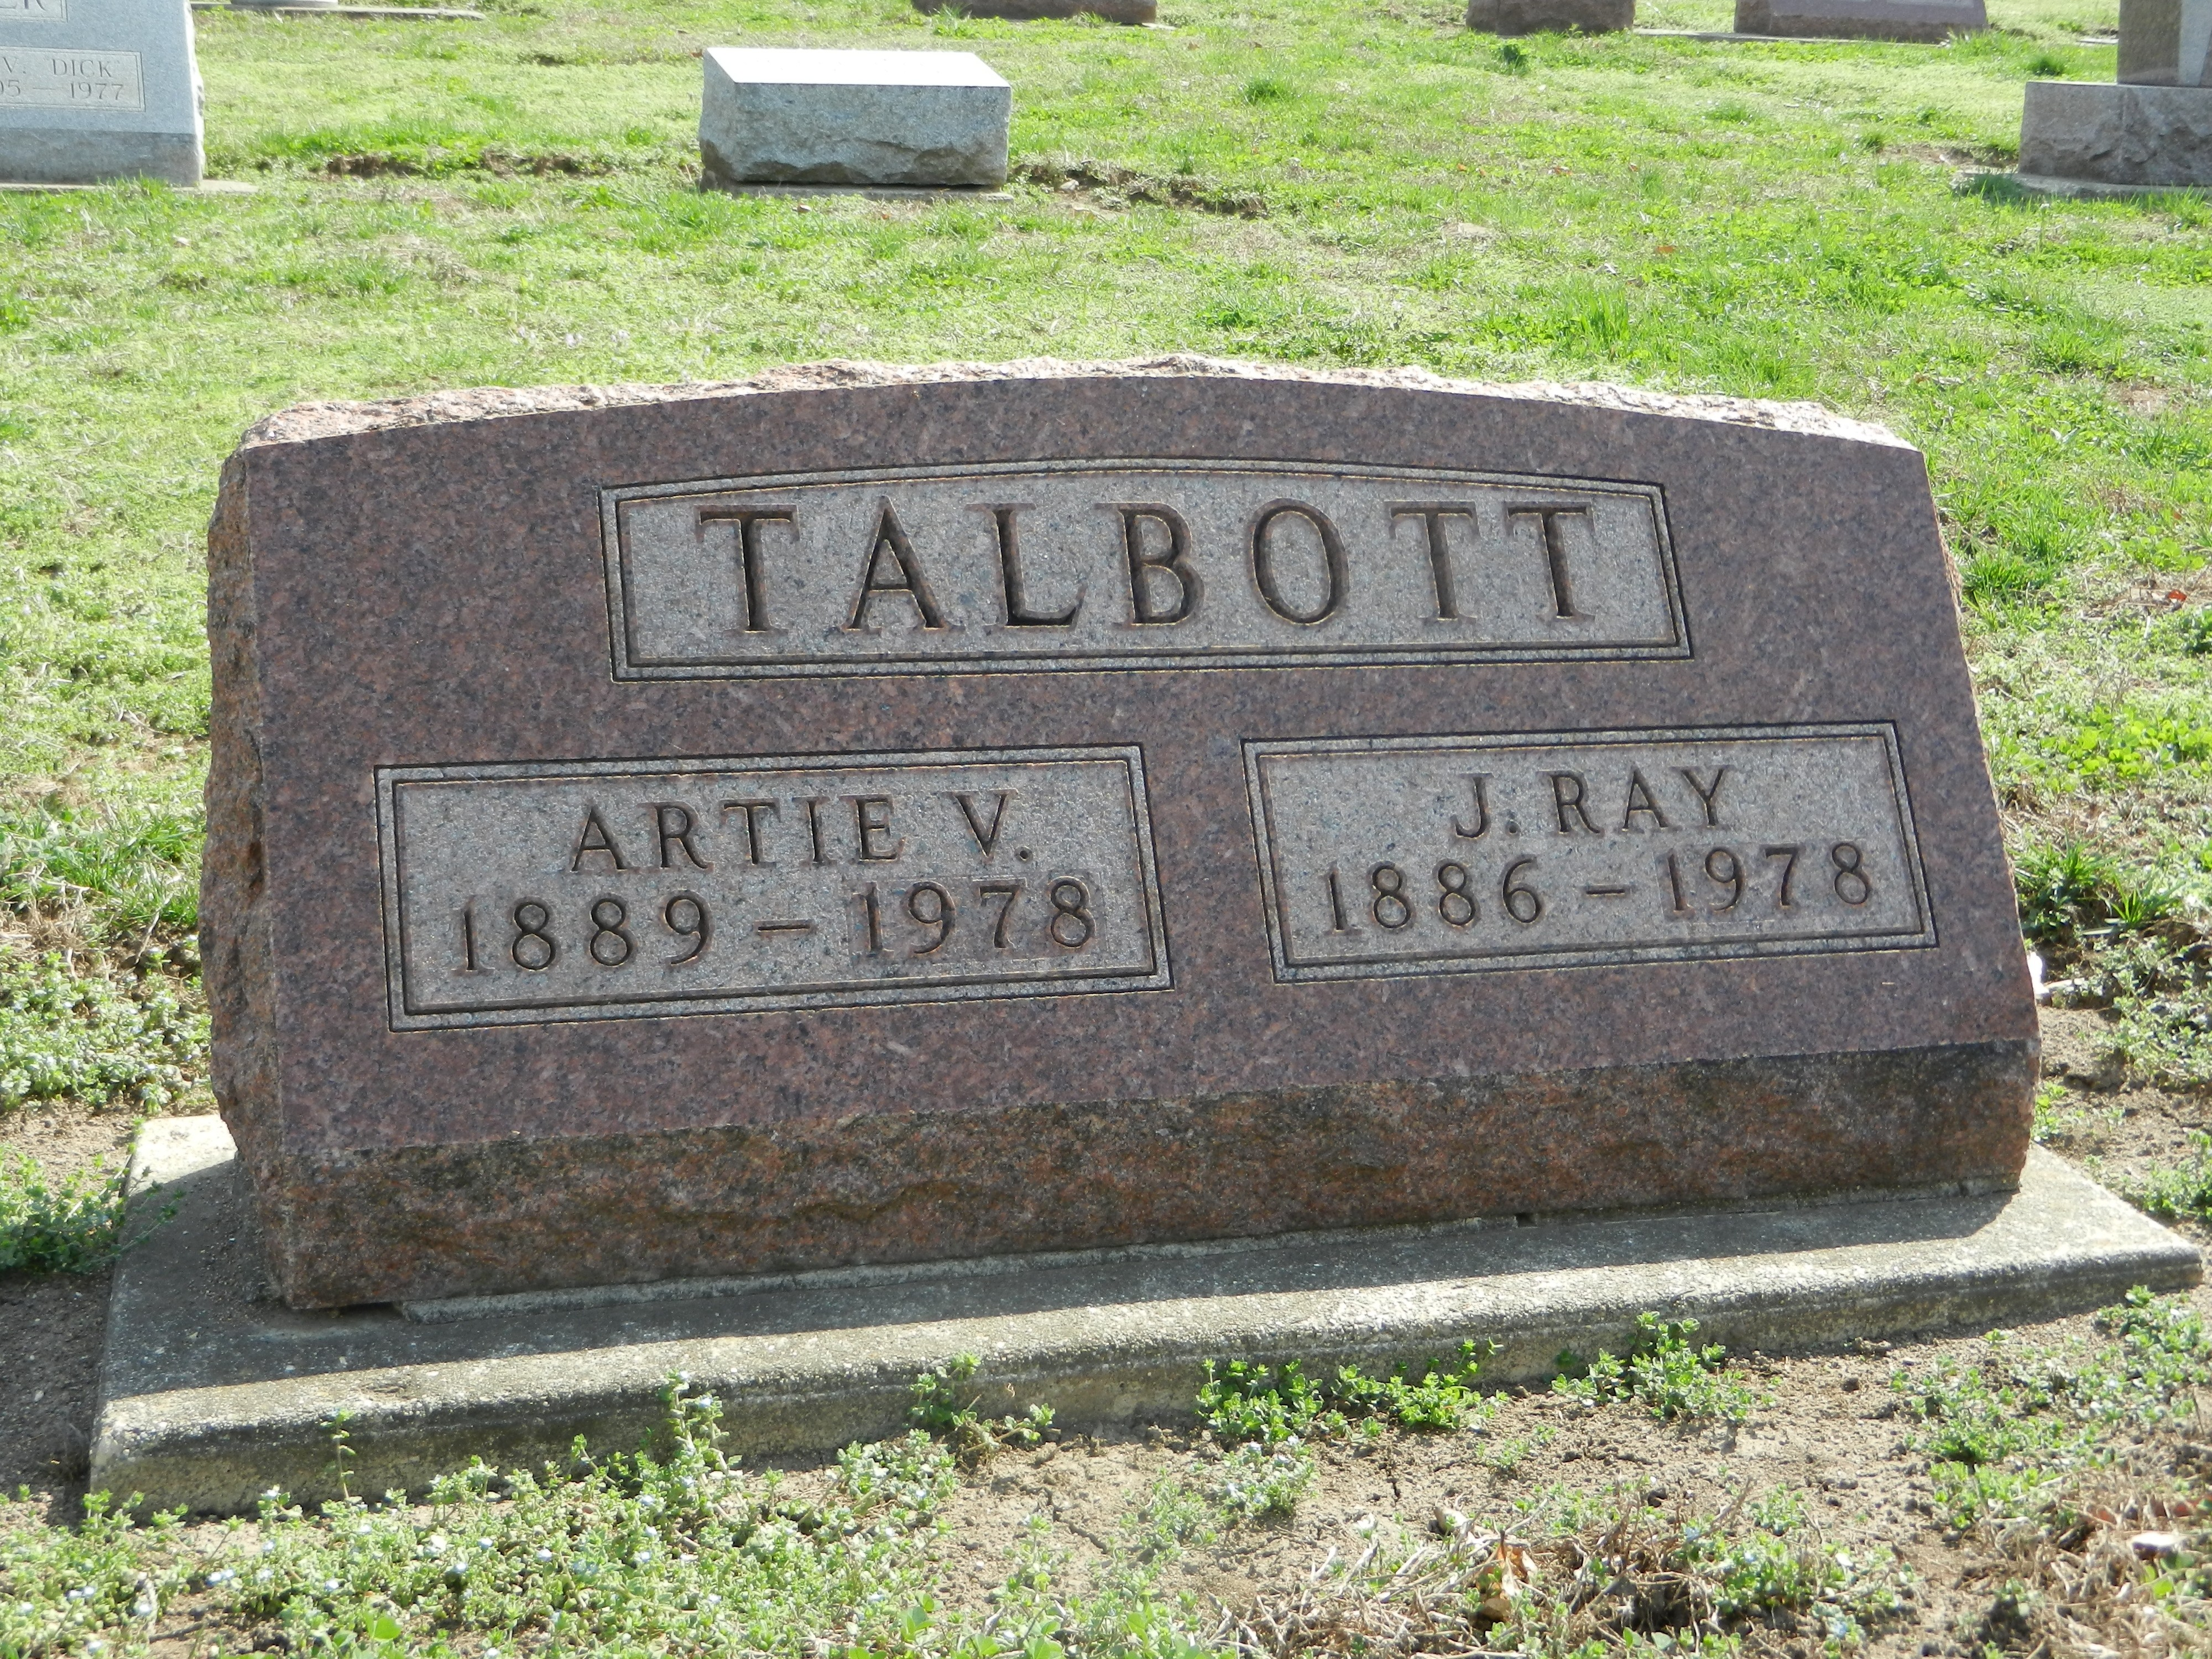 James Talbott